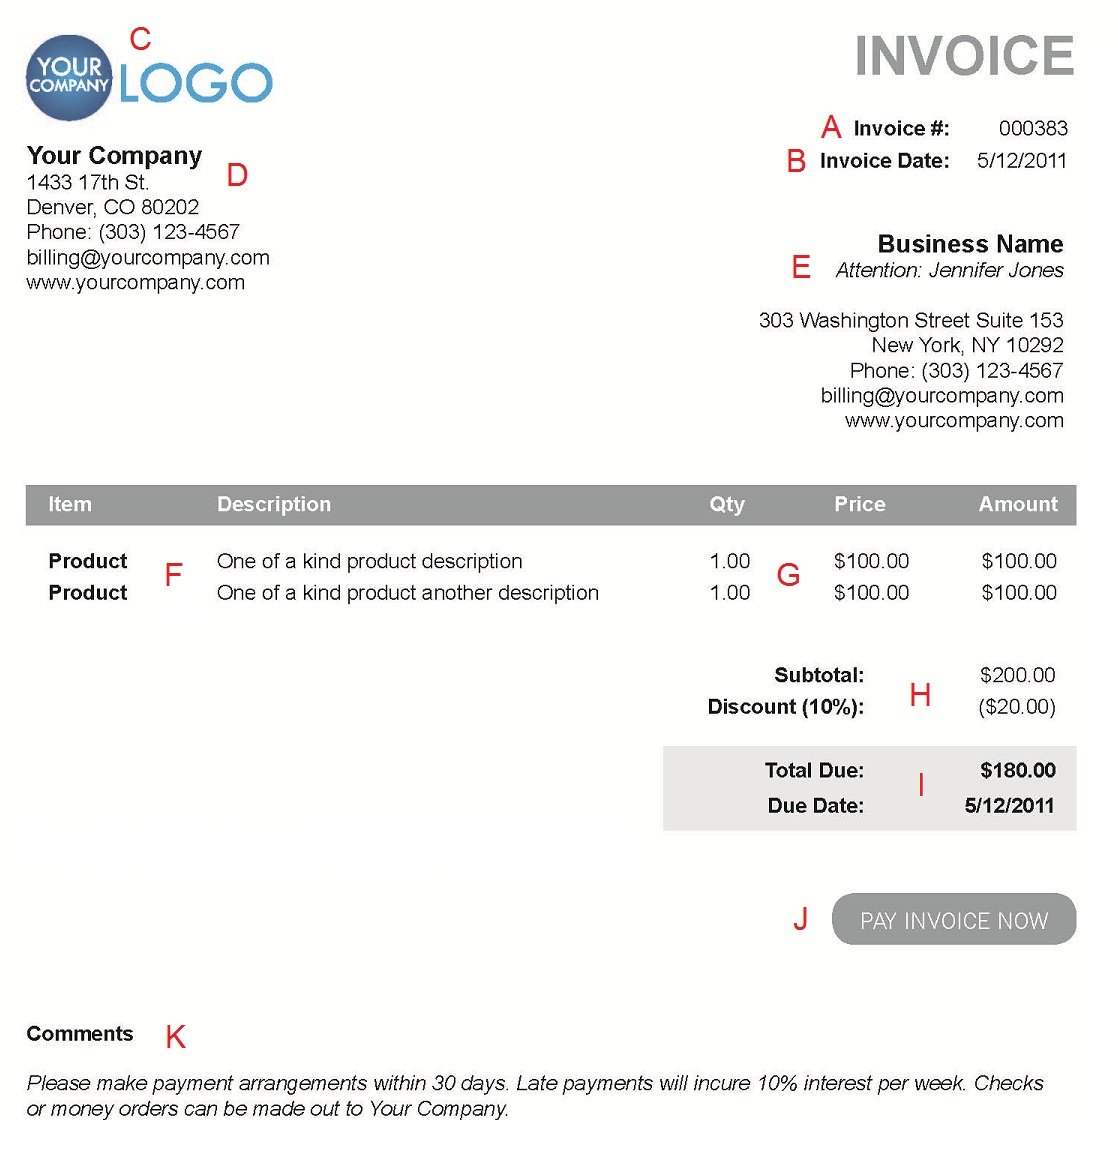 Usdgus  Surprising The  Different Sections Of An Electronic Payment Invoice With Extraordinary A  With Beautiful Sample Invoices With Payment Terms Also Invoice Template Creator In Addition Free Invoice Software Uk And How To Create A Invoice Template In Excel As Well As What Is Tax Invoice Additionally Requirements Of Tax Invoice From Paysimplecom With Usdgus  Extraordinary The  Different Sections Of An Electronic Payment Invoice With Beautiful A  And Surprising Sample Invoices With Payment Terms Also Invoice Template Creator In Addition Free Invoice Software Uk From Paysimplecom